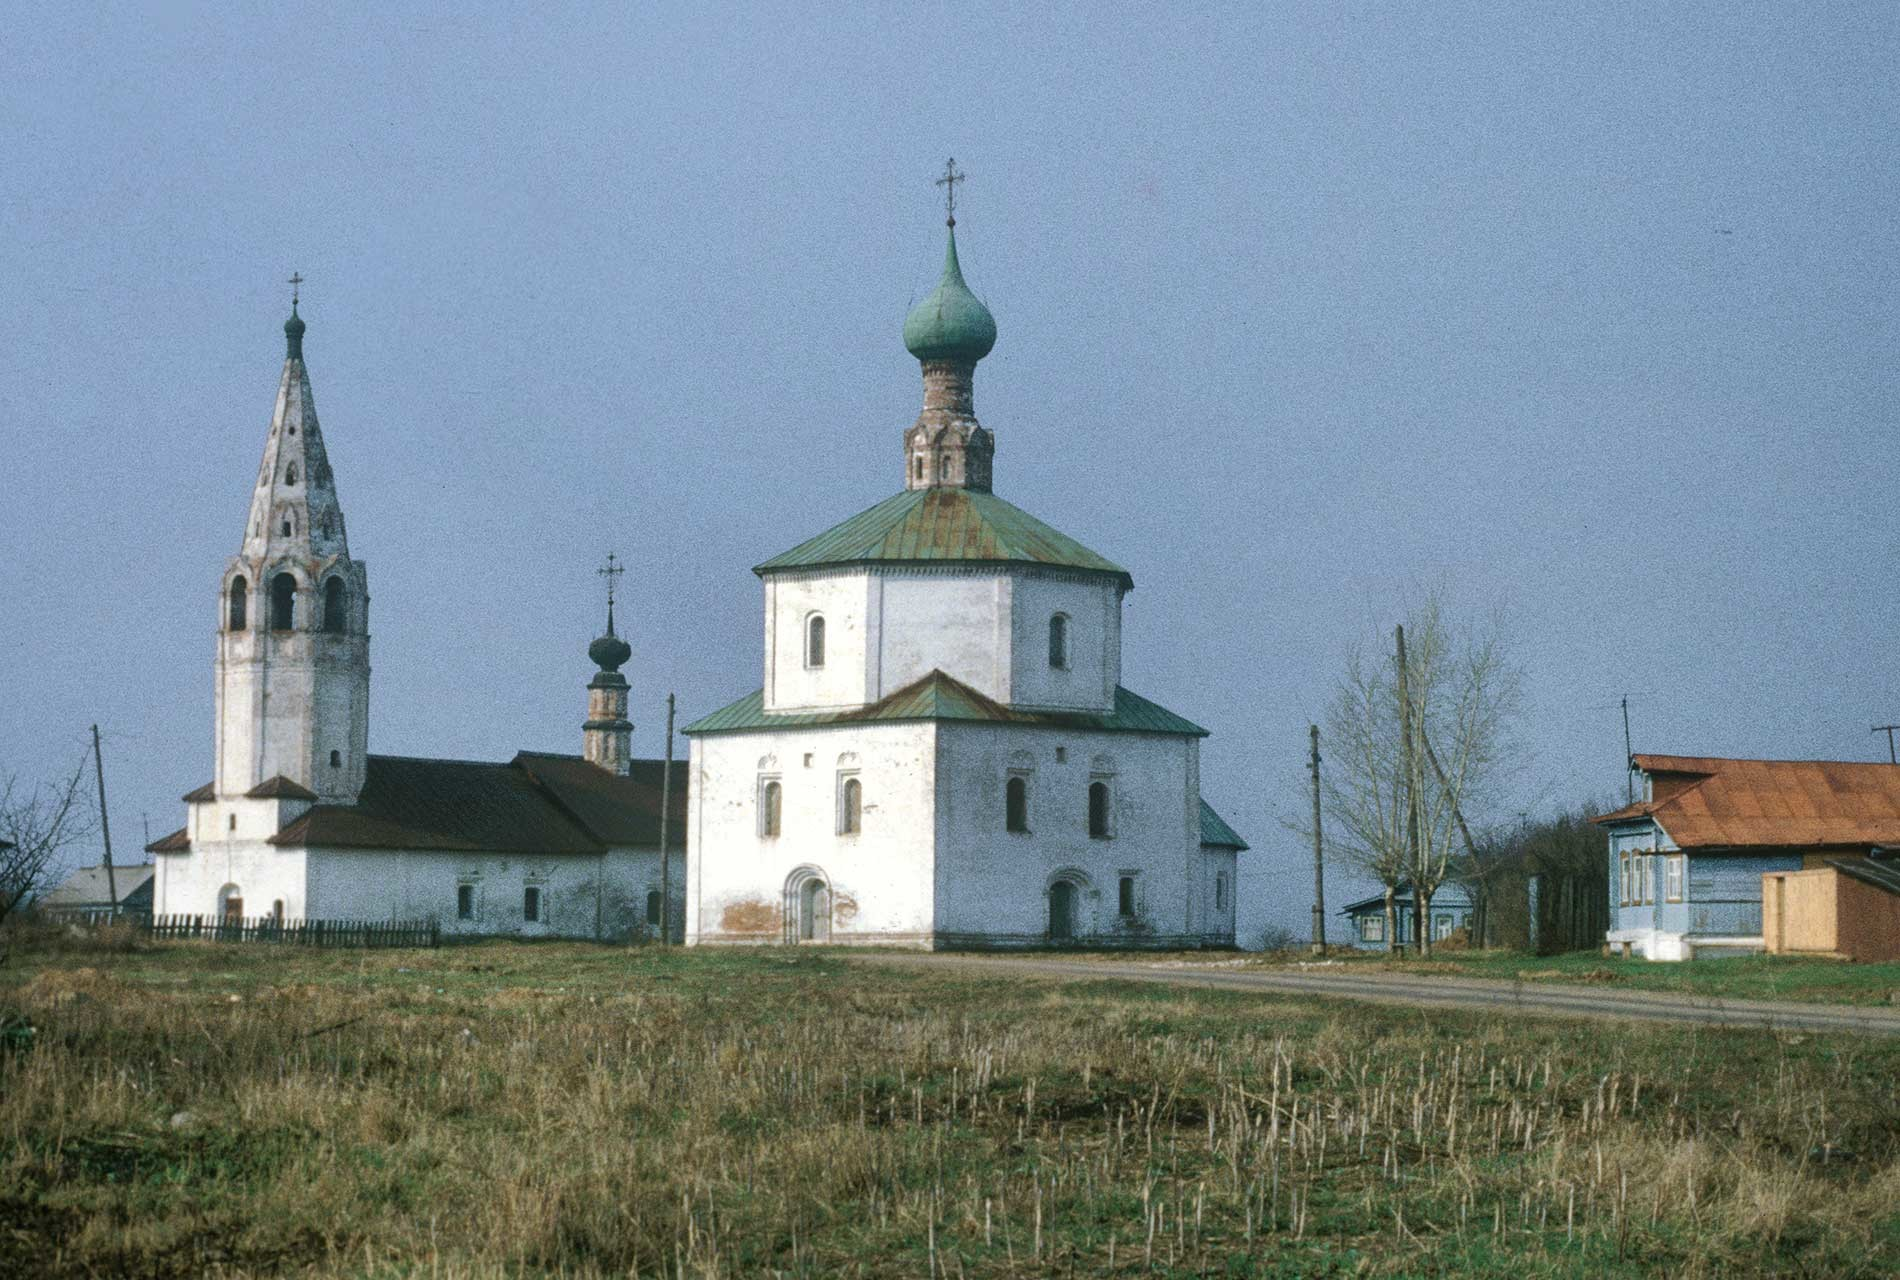 Suzdal. Church of Elevation of the Cross (left)&Church of Sts. Cosma & Damian in Korovniki. Southwest view. April 27, 1980.